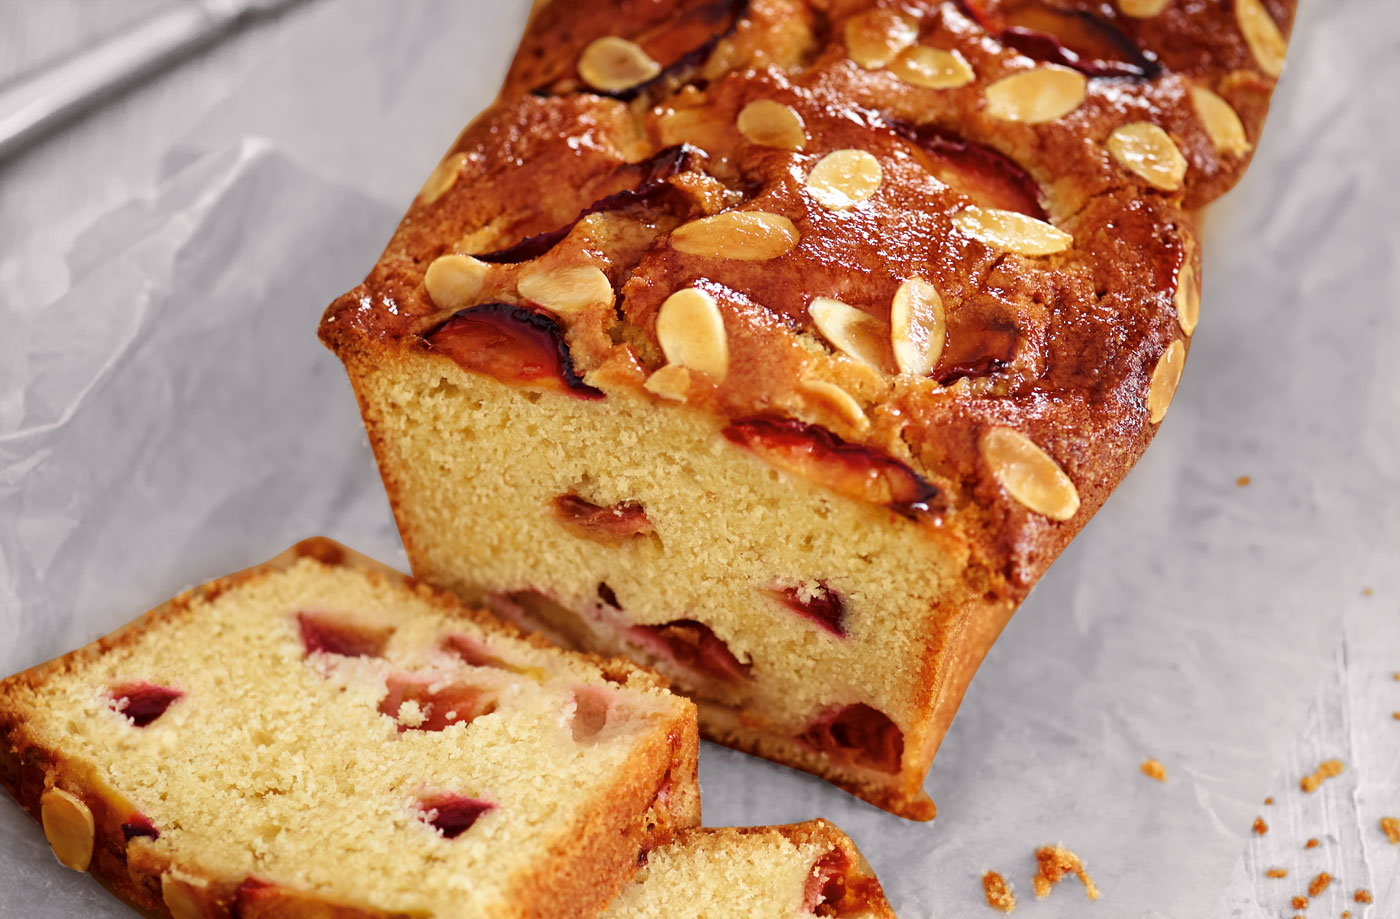 Plum and almond loaf